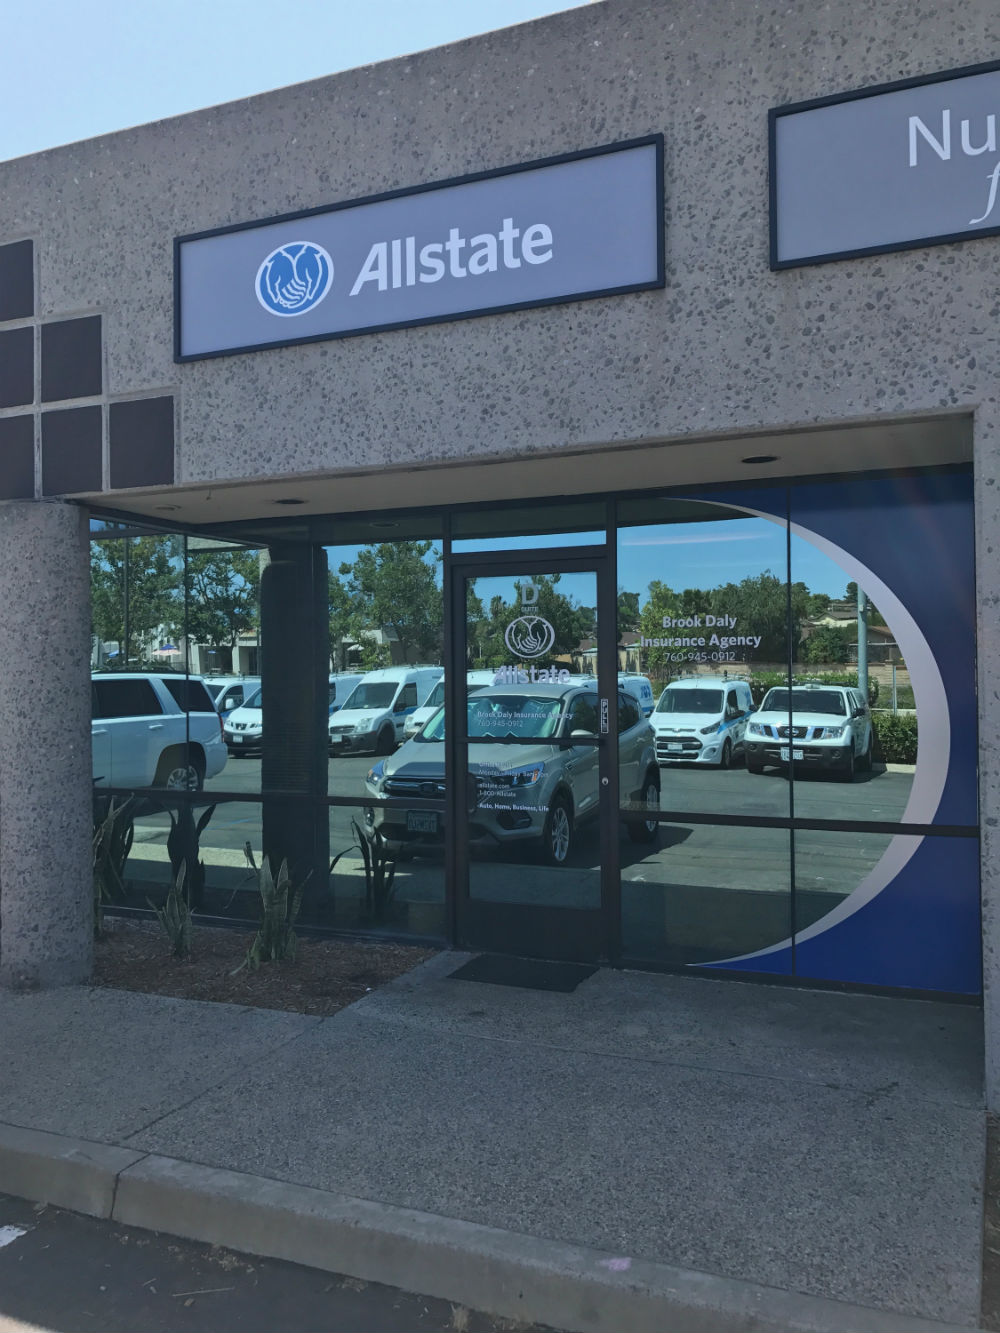 Brook Daly: Allstate Insurance image 3